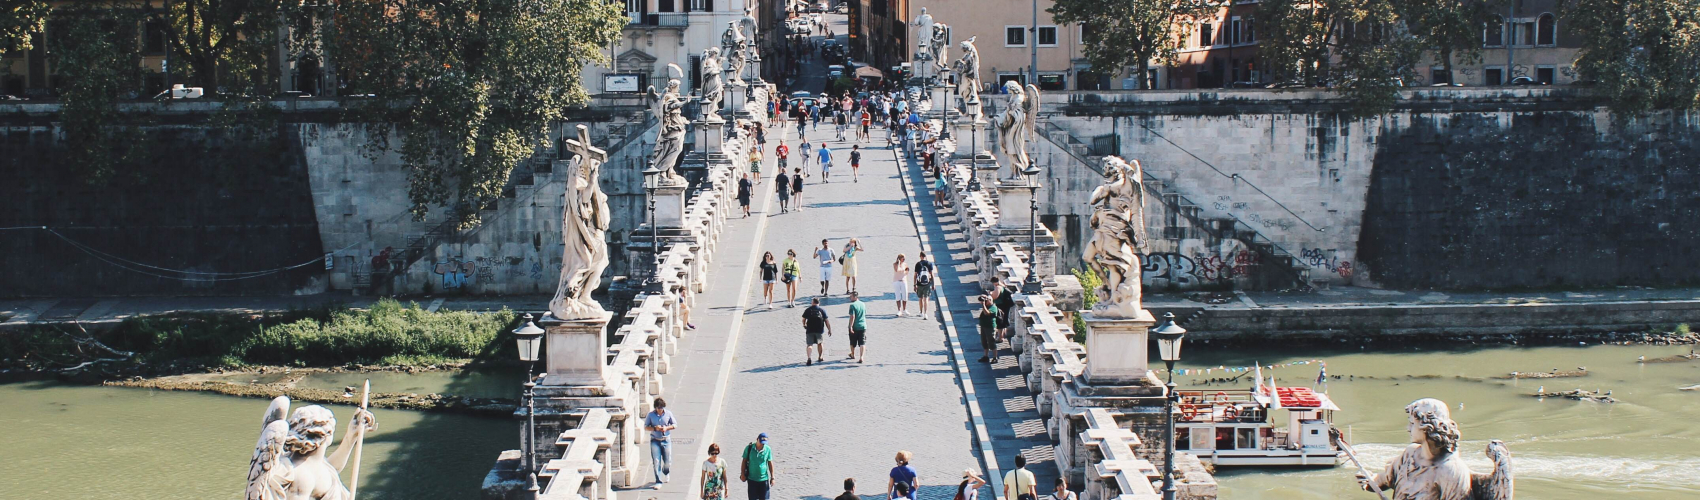 Bridge with statues at Castel Sant'Angelo, Rome, Italy